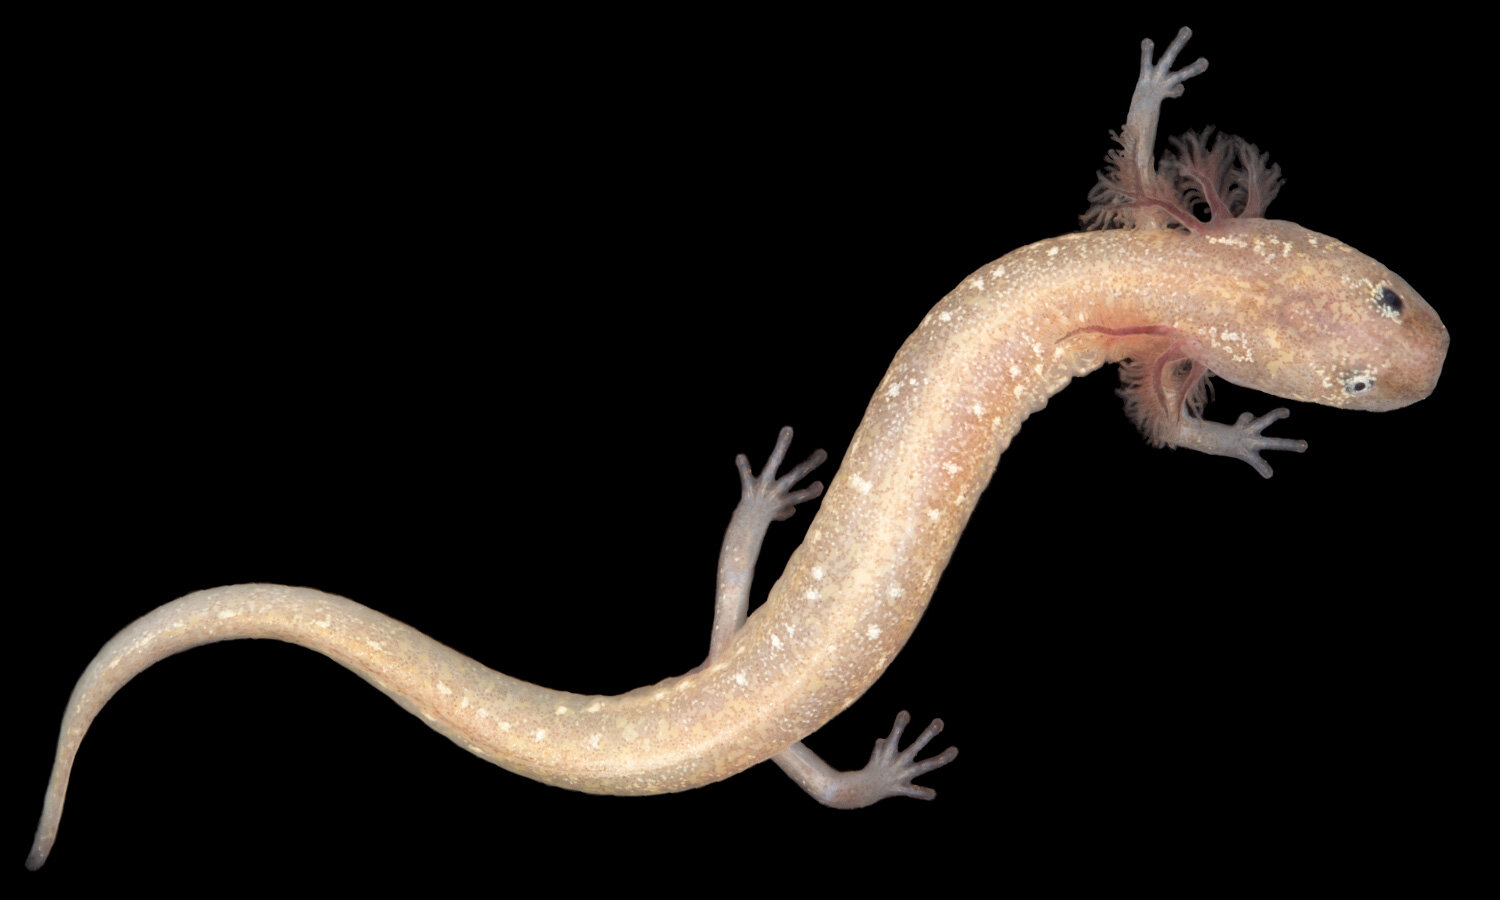 This new groundwater salamander species from Central Texas doesn't have a name yet, and researchers say it's already critically endangered.